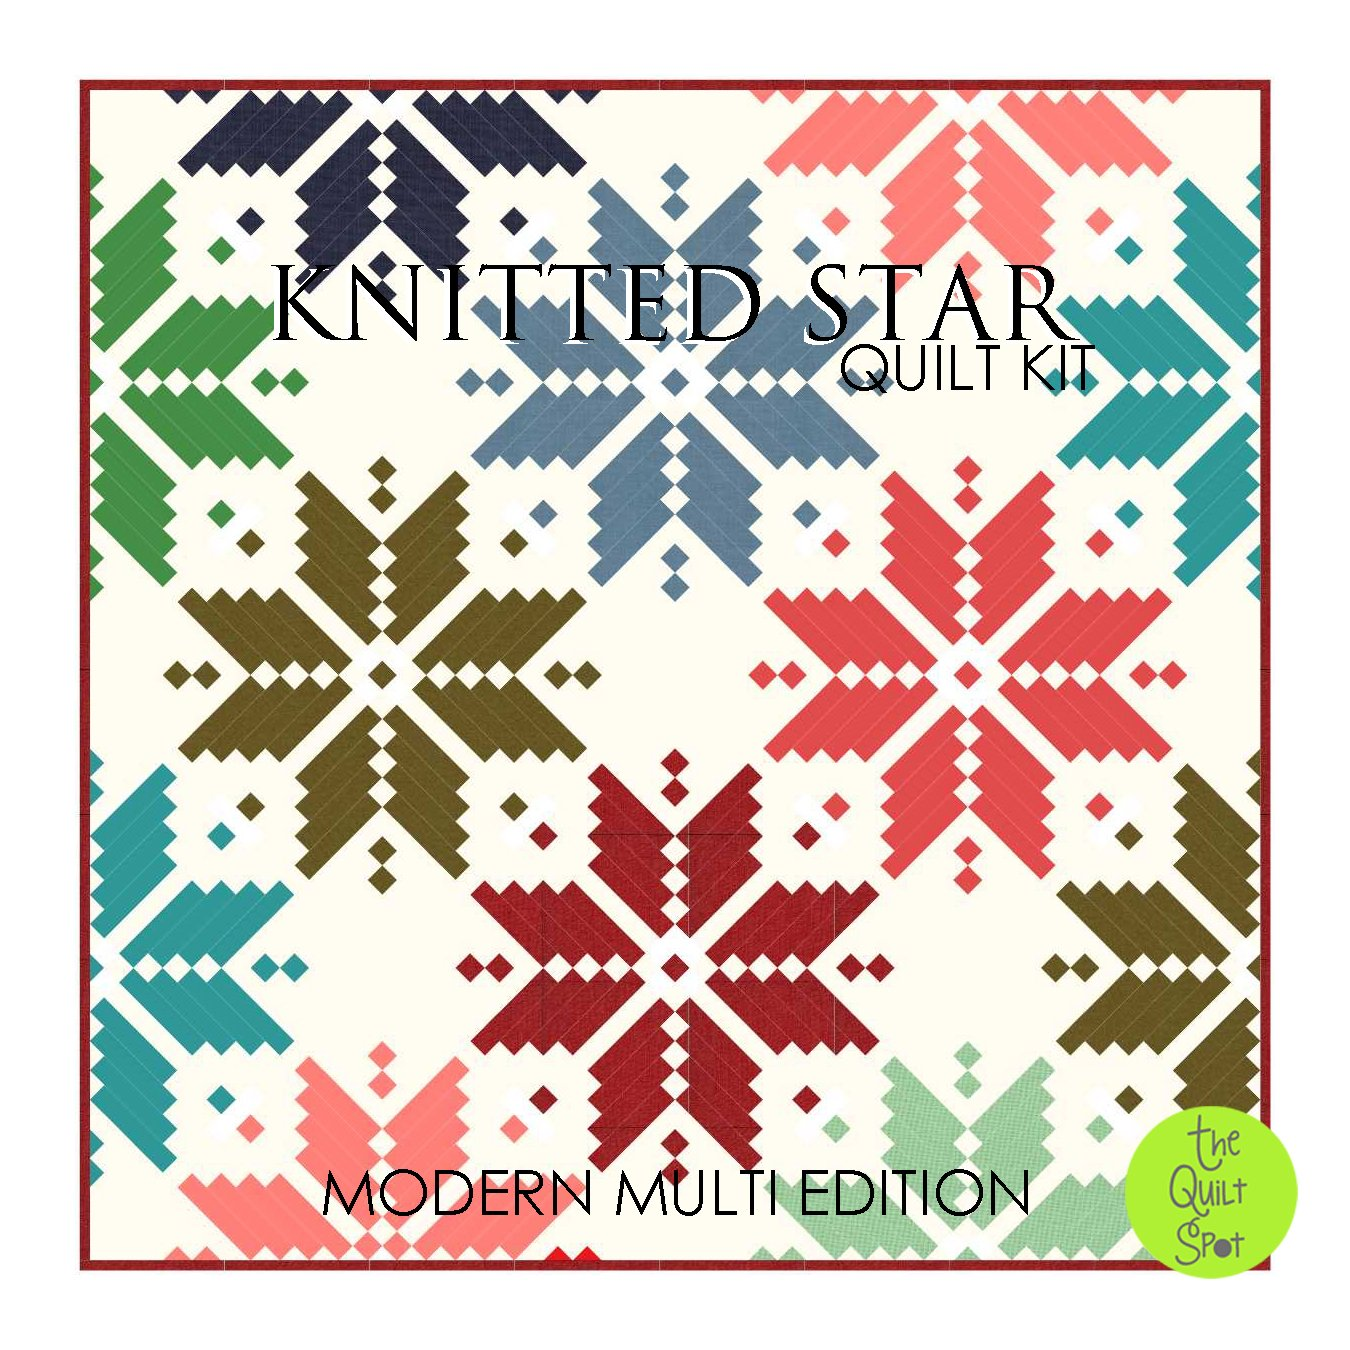 Knitted Star Quilt Kit - Modern Multi Edition